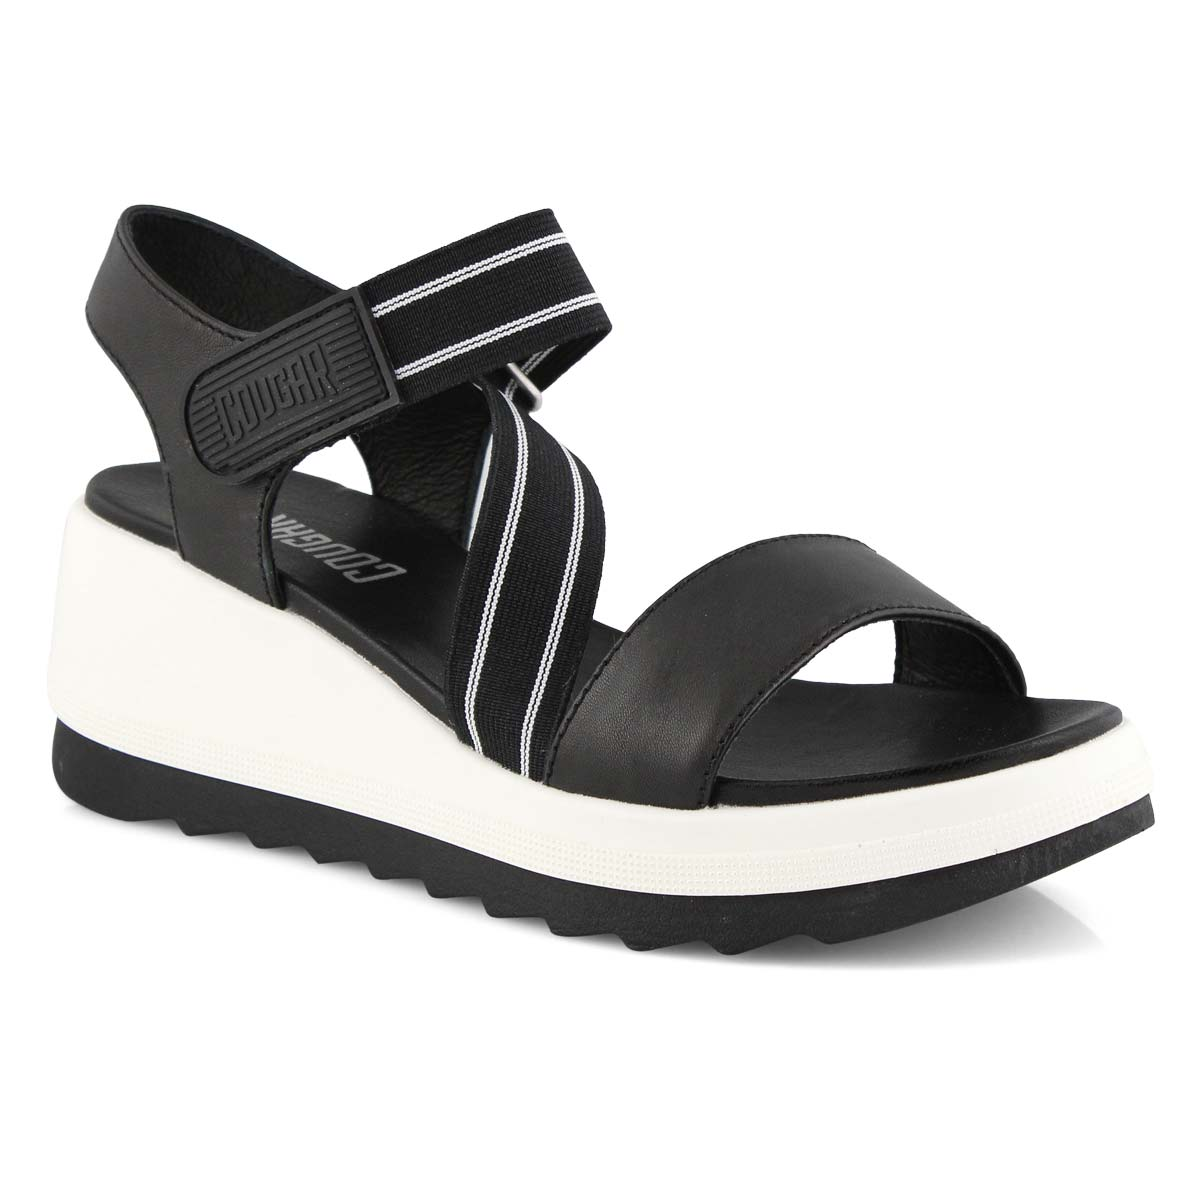 Women's HIBISCUS black wedge sandals